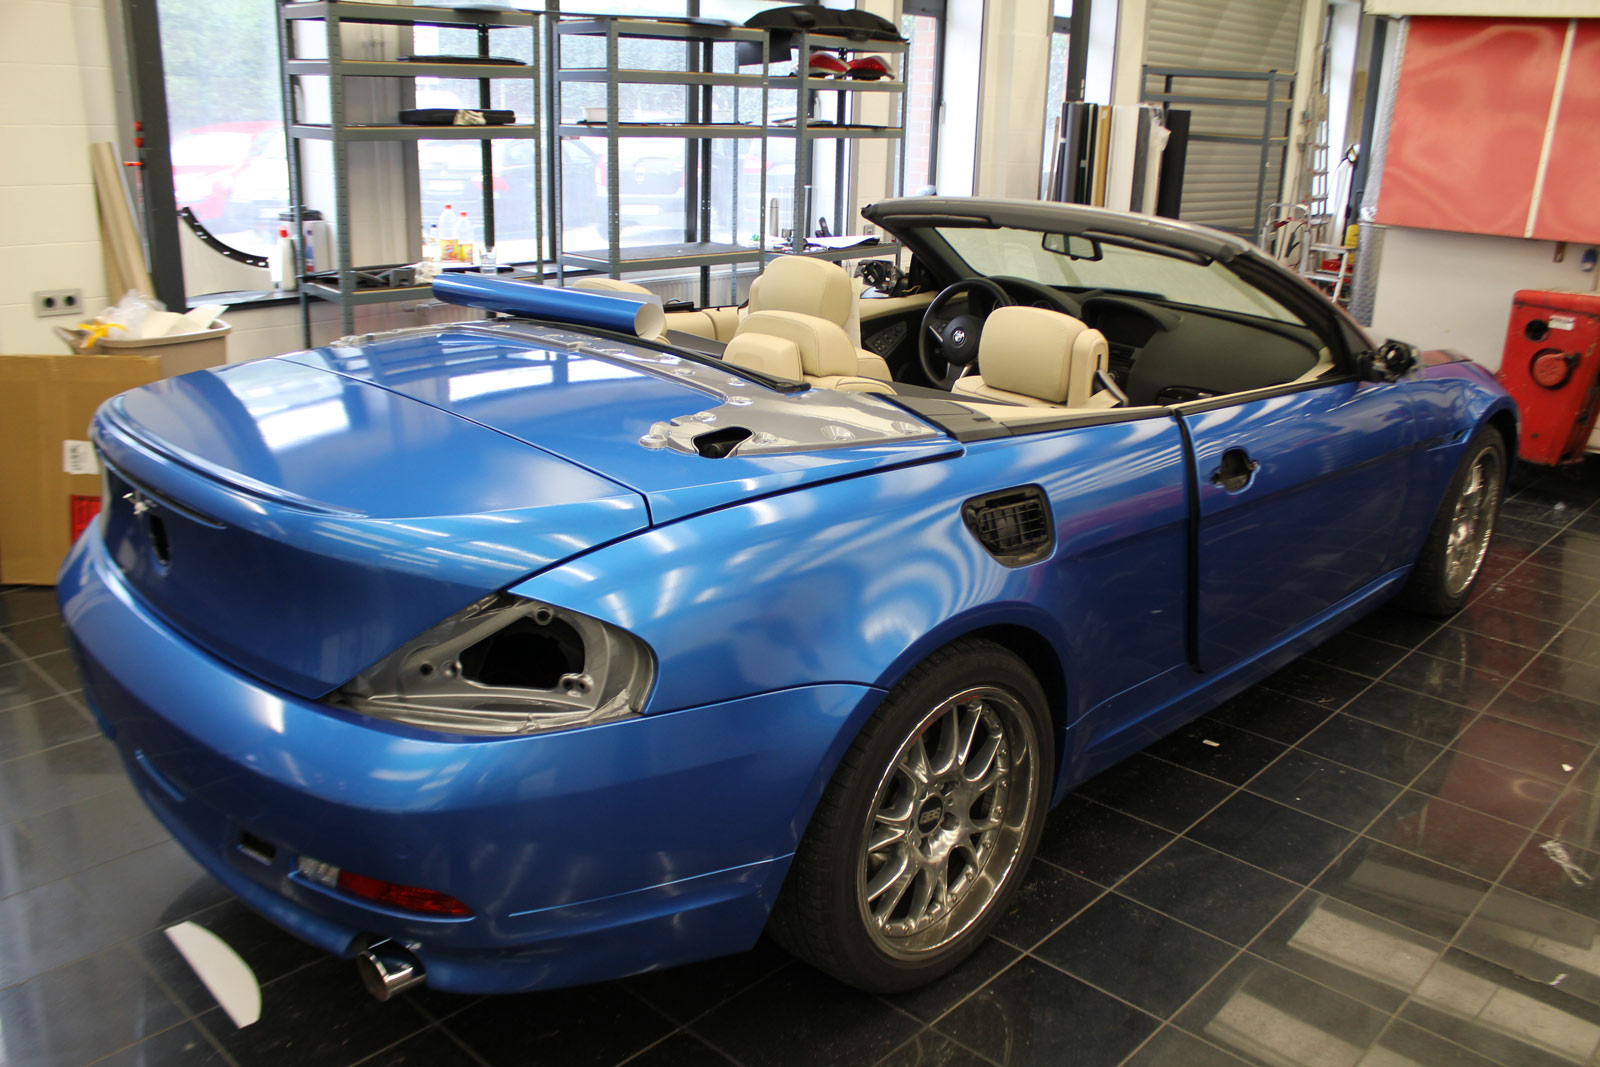 BMW_6er_Cabrio_Folierung_Bright_Blue_Metallic_05